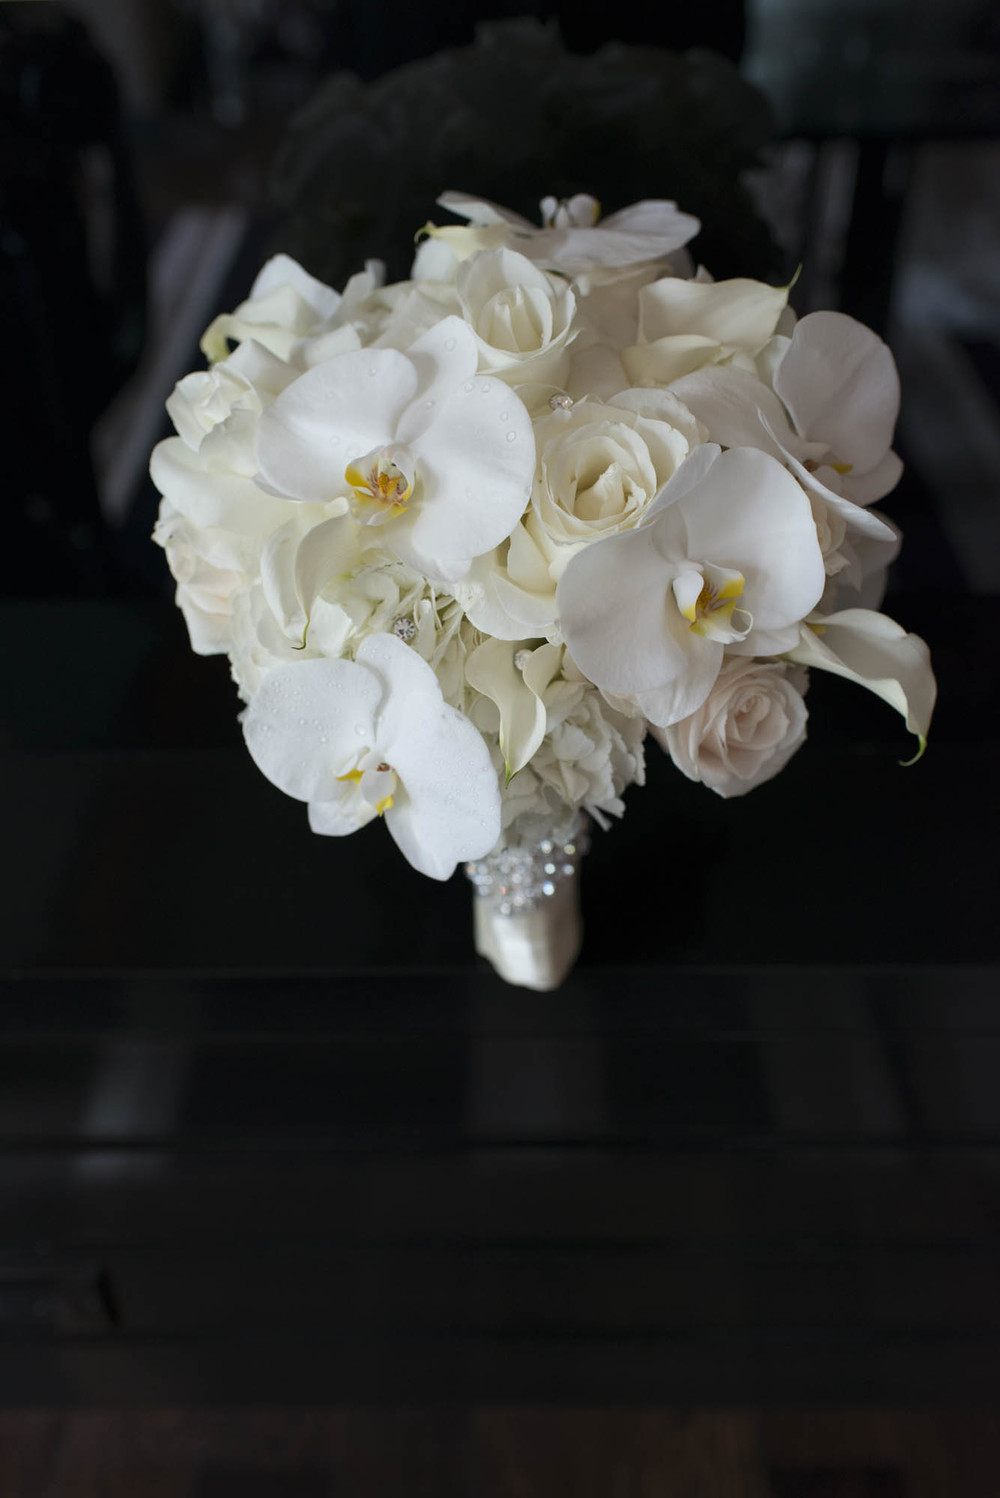 White Bridal Bouquet with orchids, hydrangea, and roses.   CREATIVE PARTNERS: PHOTOGRAPHY • AltF Photography, PLANNING • Andrea Eppolito Events, FLORAL AND DECOR DESIGN •Destinations by Design, VENUE AND CATERING • Mandarin Oriental, Las Vegas, STATIONERY DESIGN • Paper and Home, BRIDE'S GOWN • Vera Wang, SHOES • Jimmy Choo, GROOM'S FORMAL WEAR • Vera Wang, ENGAGEMENT RING • Delage Jewelers, WEDDING BANDS • T-Birds Jewels, CAKE DESIGN • Mandarin Oriental Las Vegas, DRAPING; DANCE FLOOR DESIGN AND PRODUCTION • Destination by Design, LIVE EVENT ARTIST • Sam Day, ENTERTAINMENT • Lucky Devils Band, CINEMATOGRAPHY • Something New